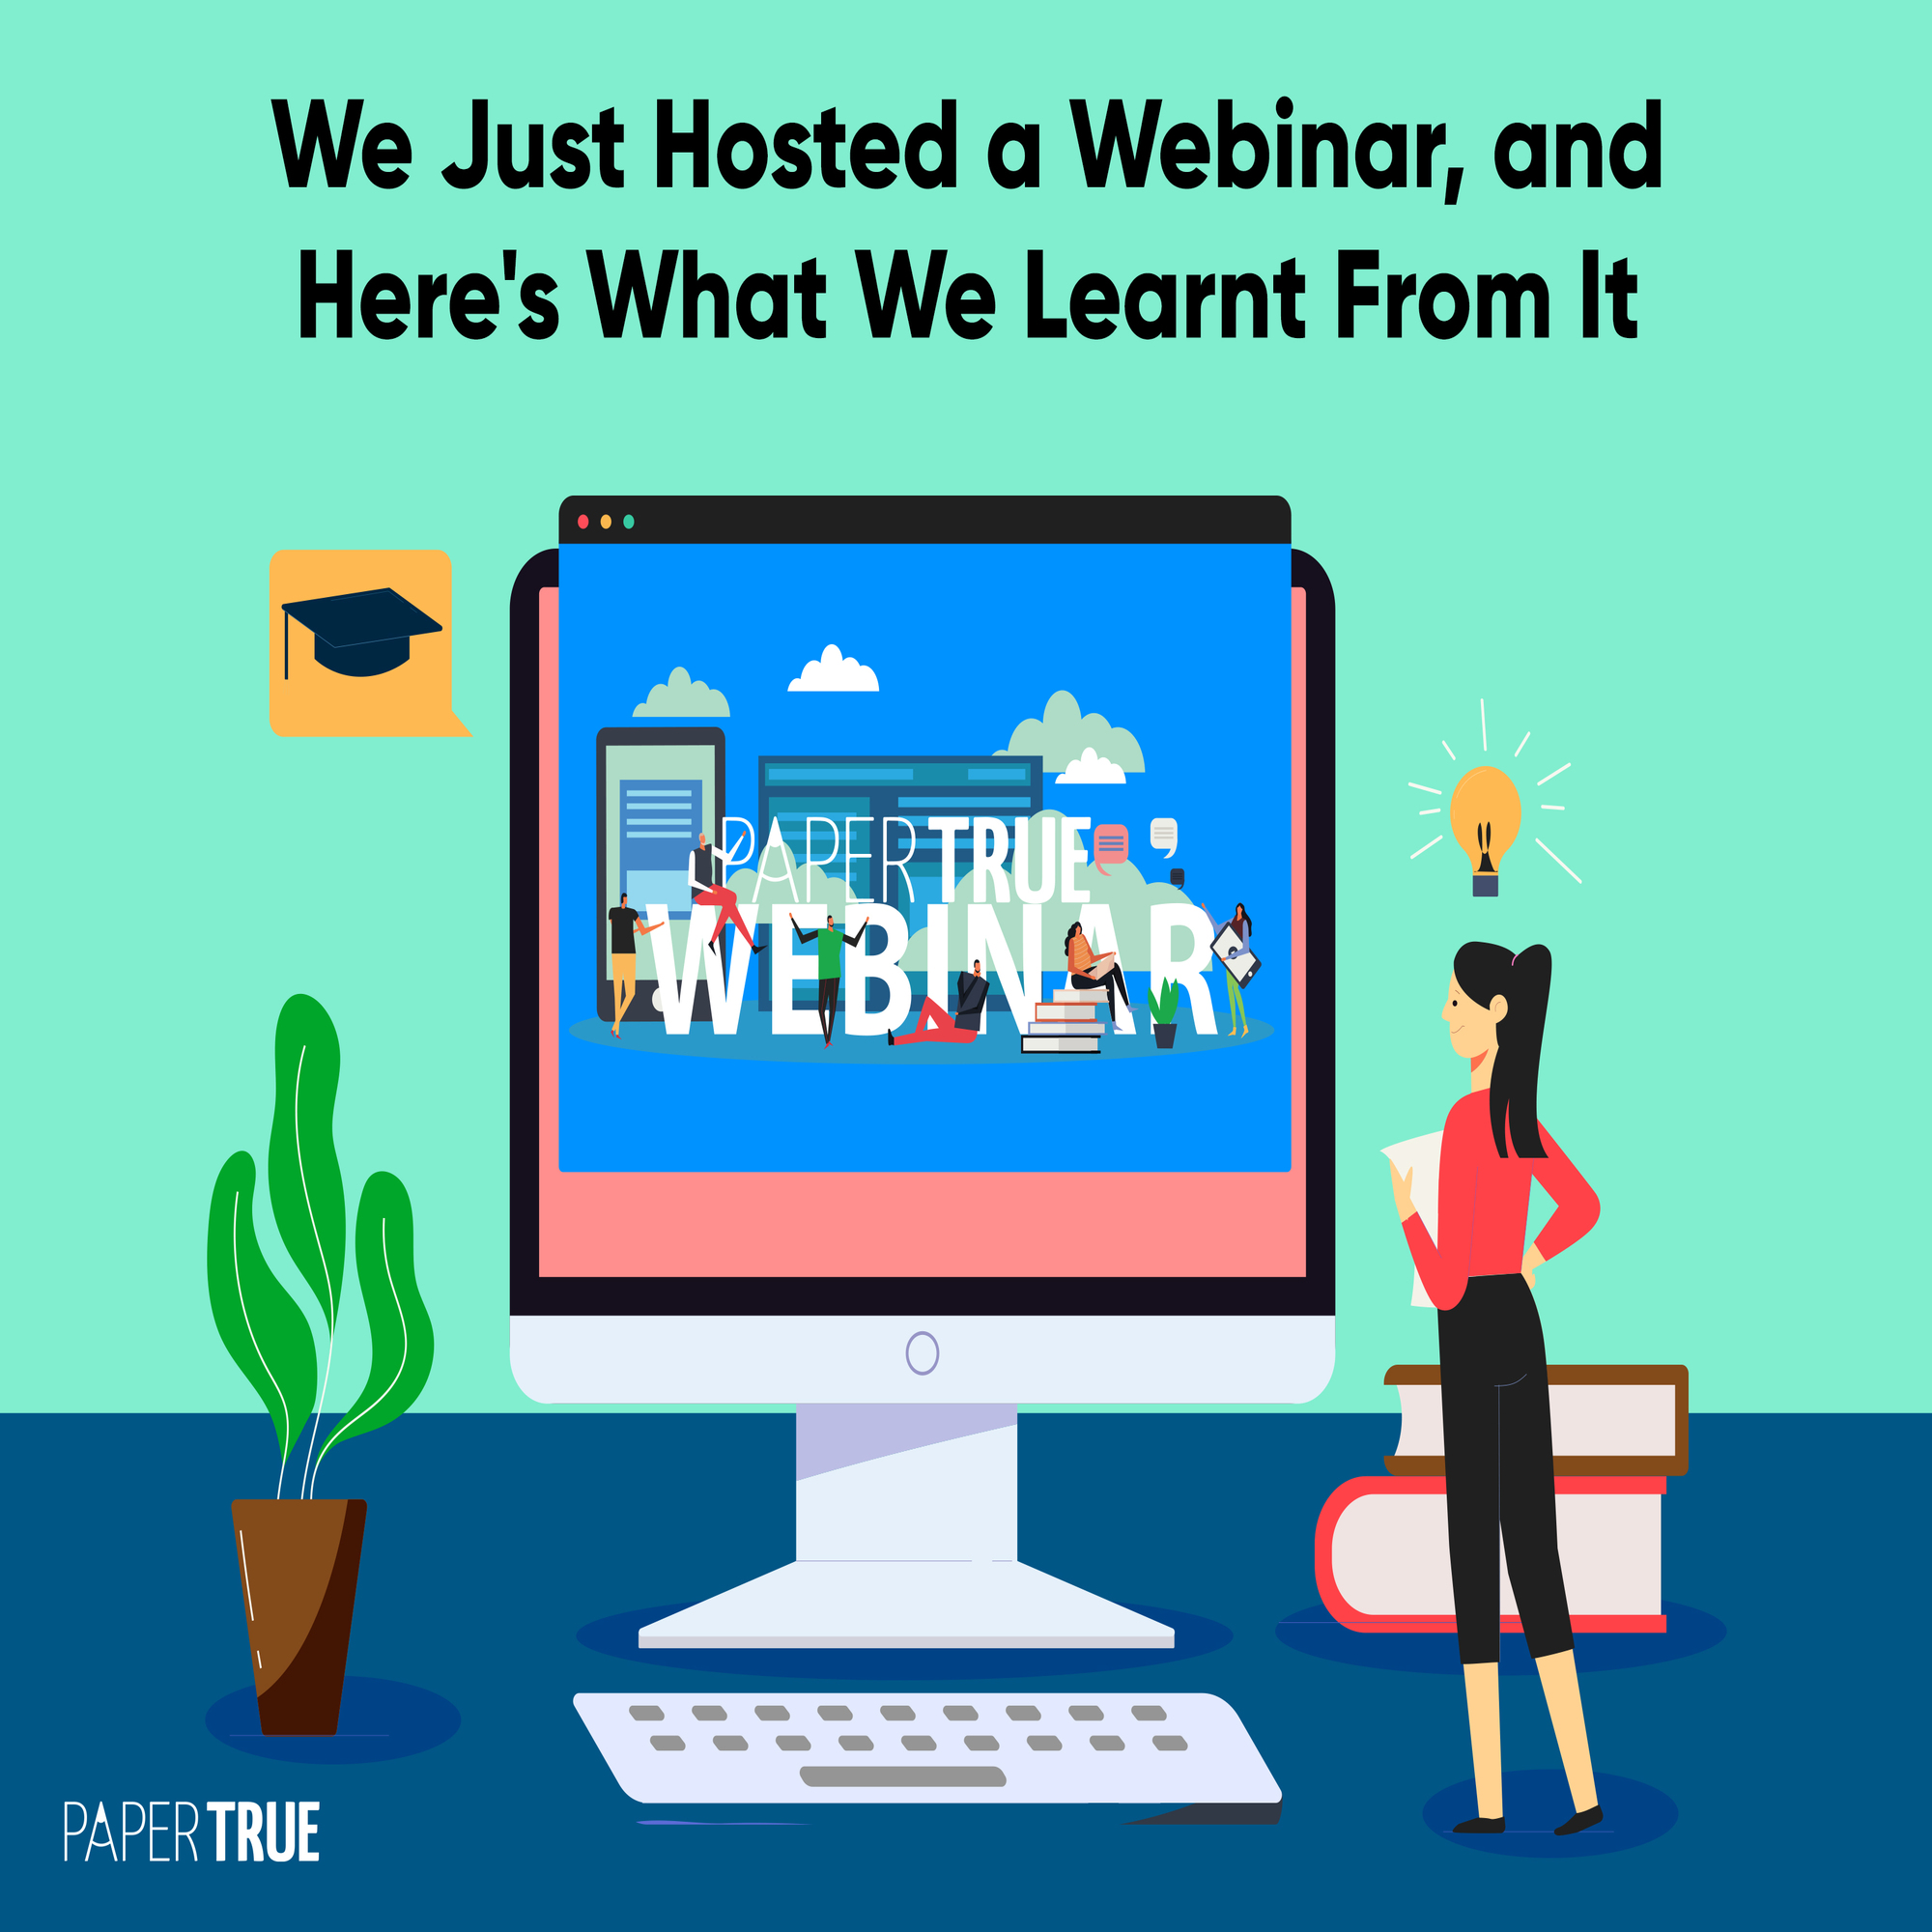 News Update: We Hosted Our First Webinar!